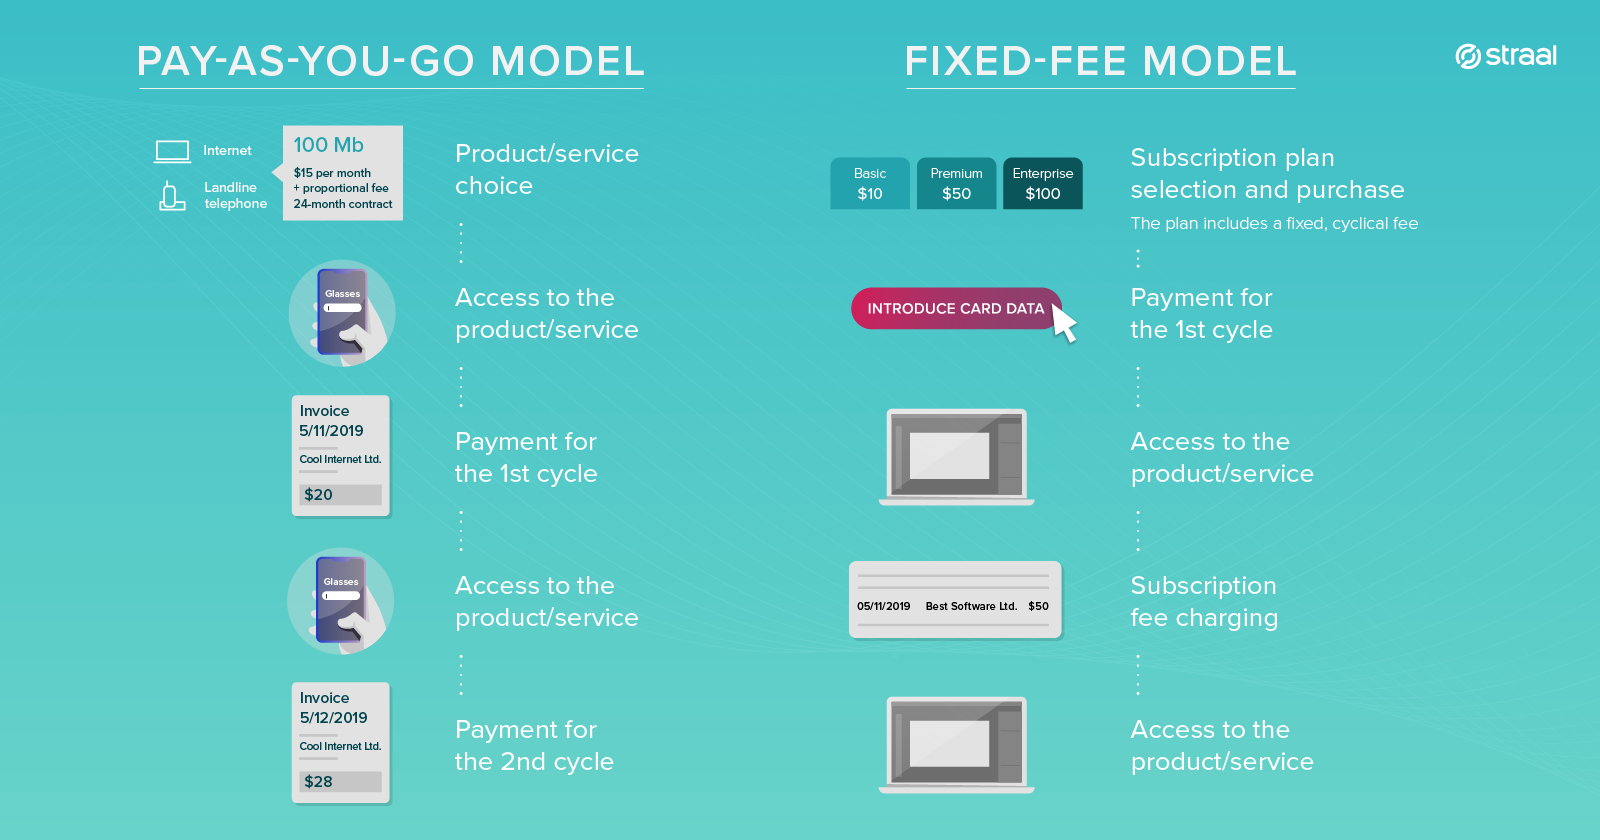 straal subscription-business-model payg-vs-fixed-fee